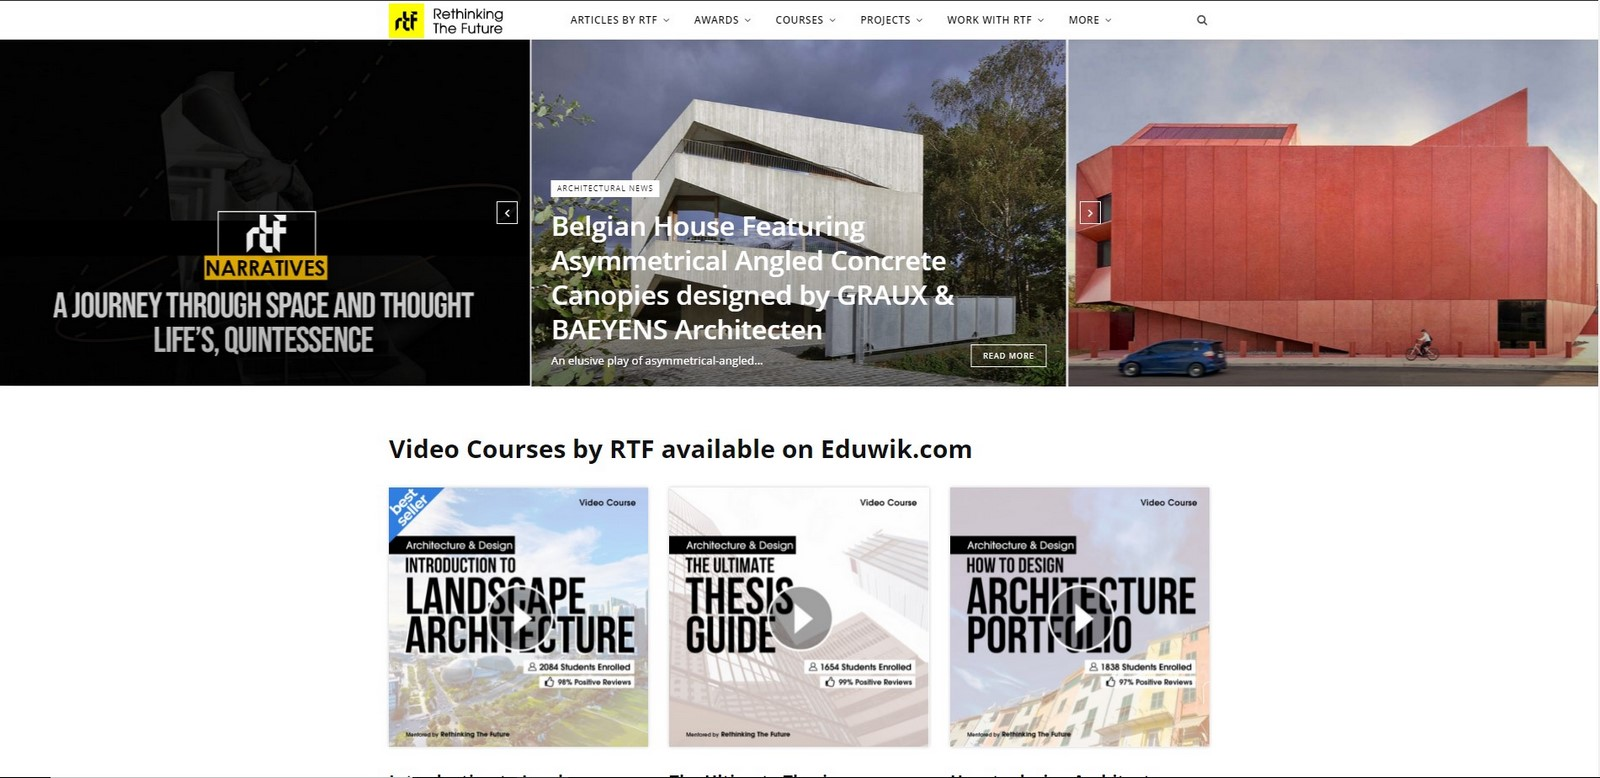 12 Websites That Can Aid Architectural Thesis Research - Sheet11